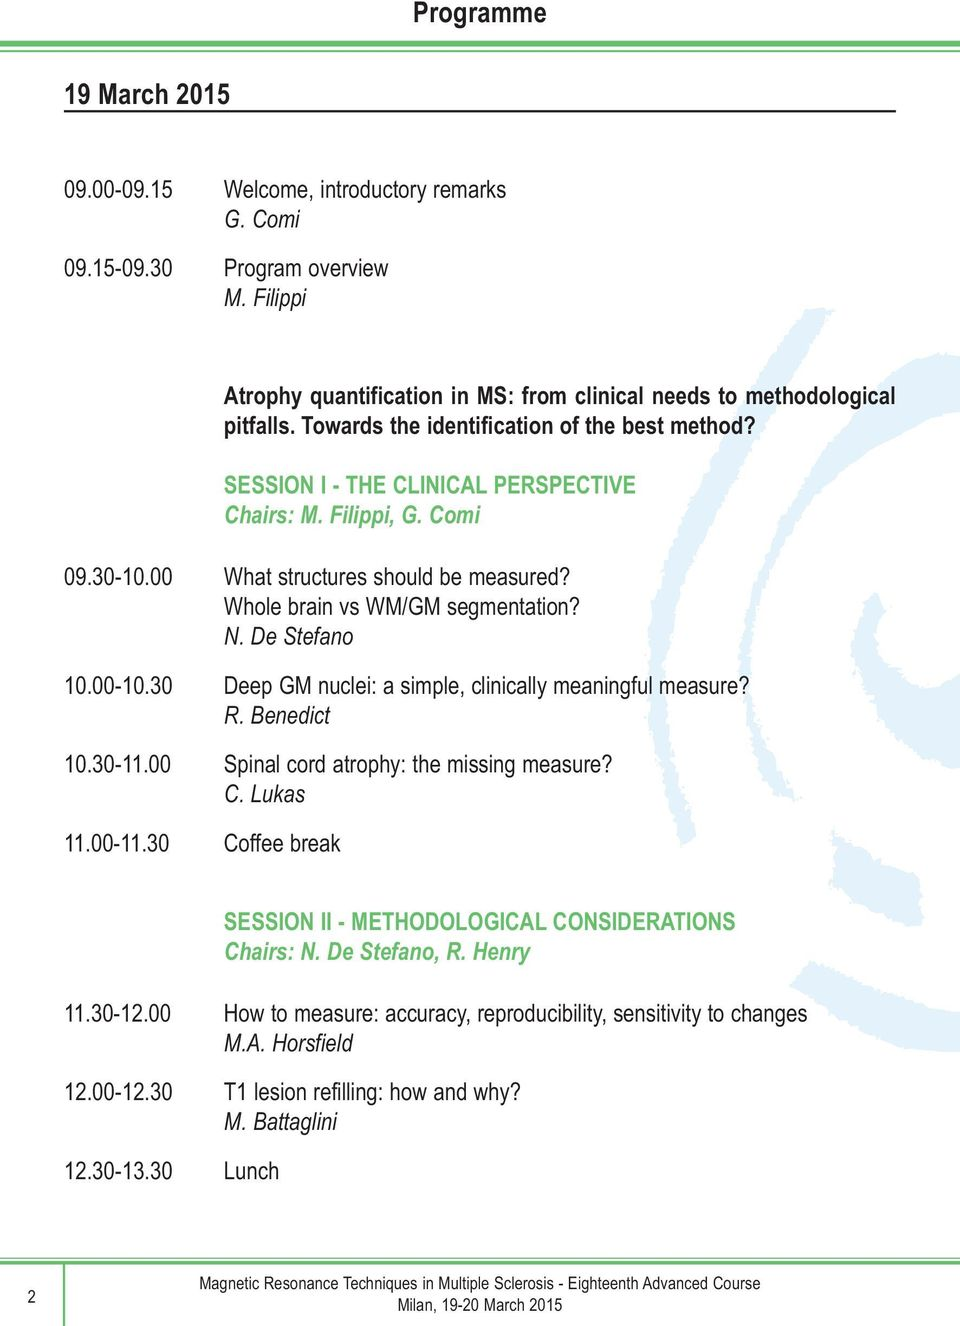 De Stefano 10.00-10.30 Deep GM nuclei: a simple, clinically meaningful measure? R. Benedict 10.30-11.00 Spinal cord atrophy: the missing measure? C. Lukas 11.00-11.